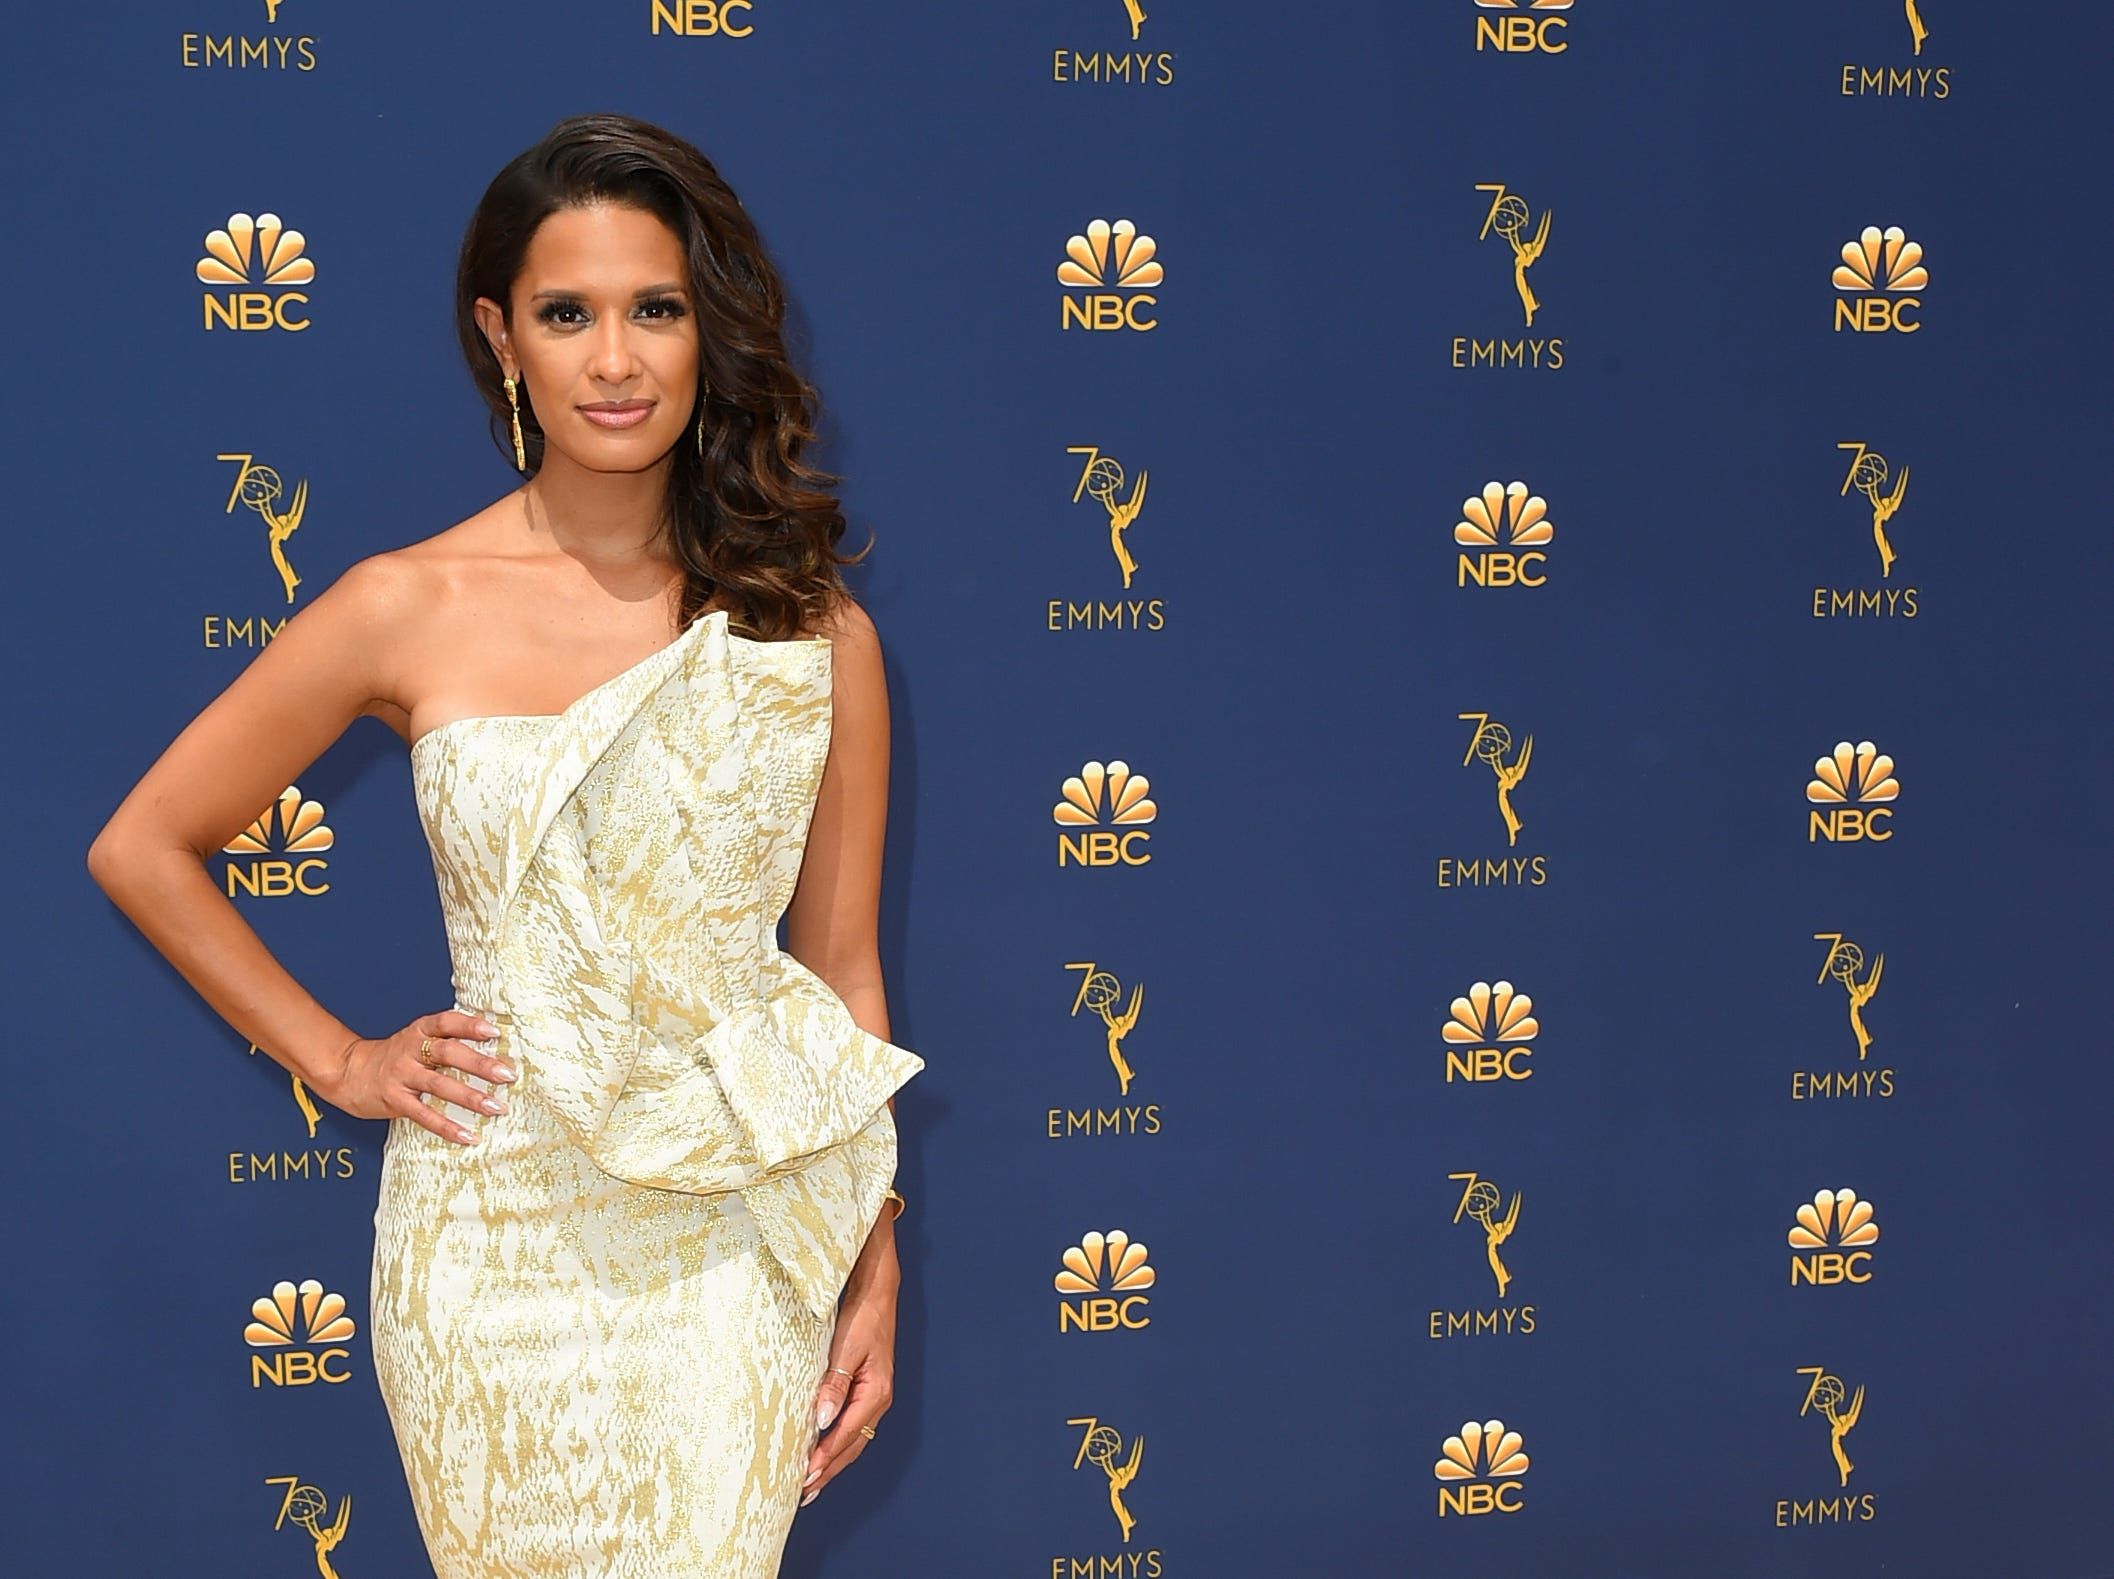 Rocsi Diaz arrives at the 70th Primetime Emmy Awards on Monday, Sept. 17, 2018, at the Microsoft Theater in Los Angeles.